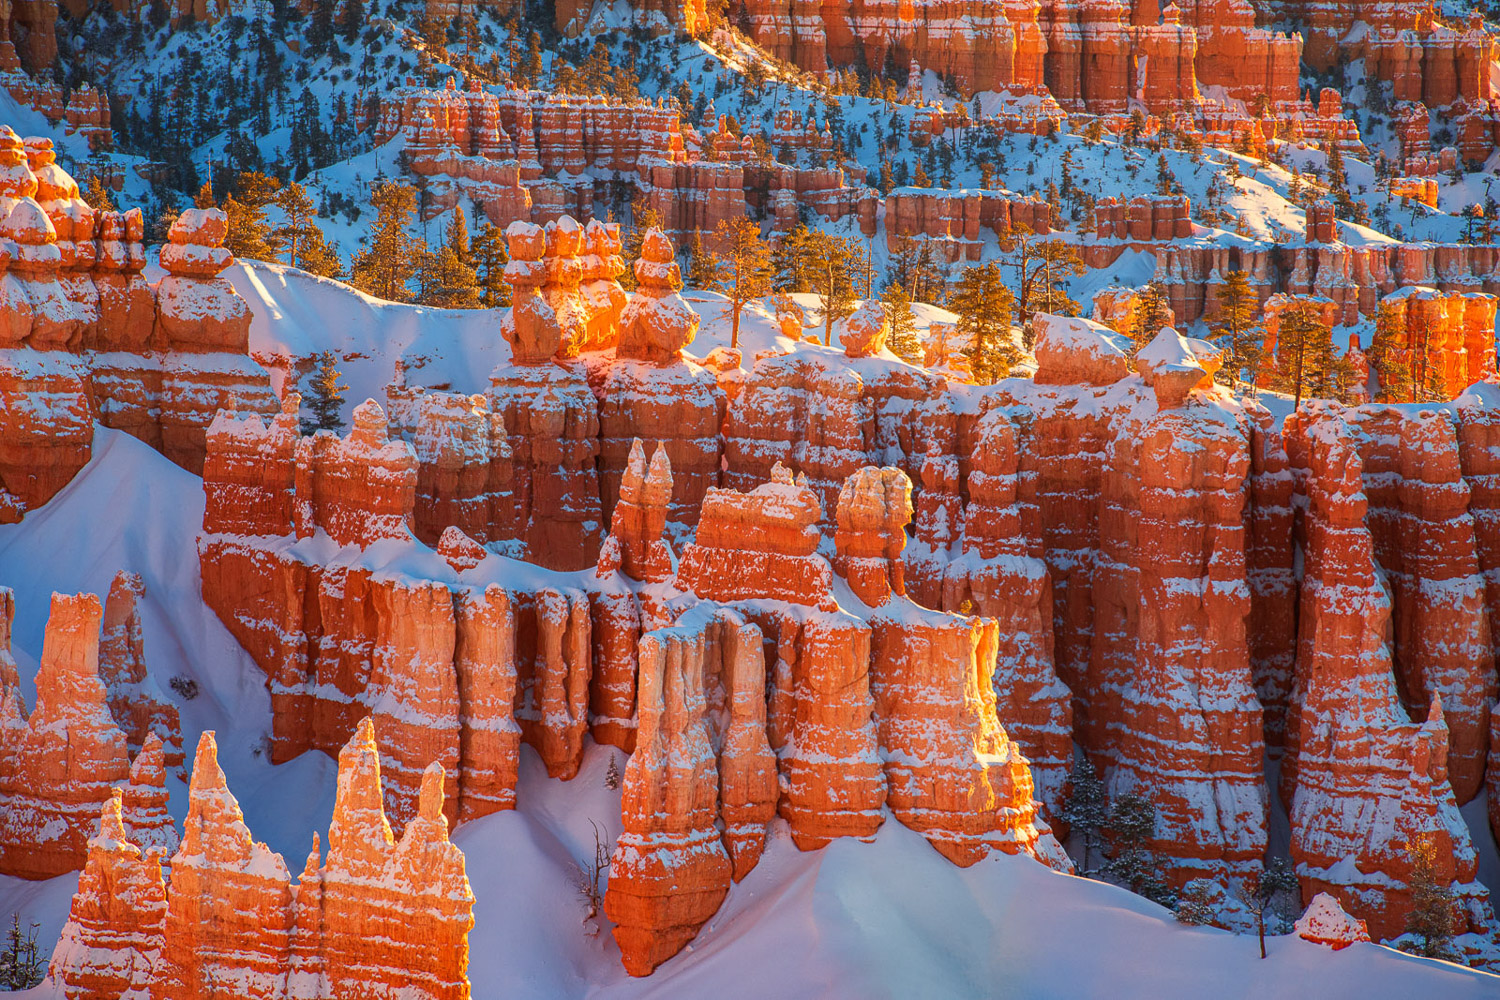 The hoodoos of Bryce Canyon glowing in sunrise light after a winter snowstorm the night before.